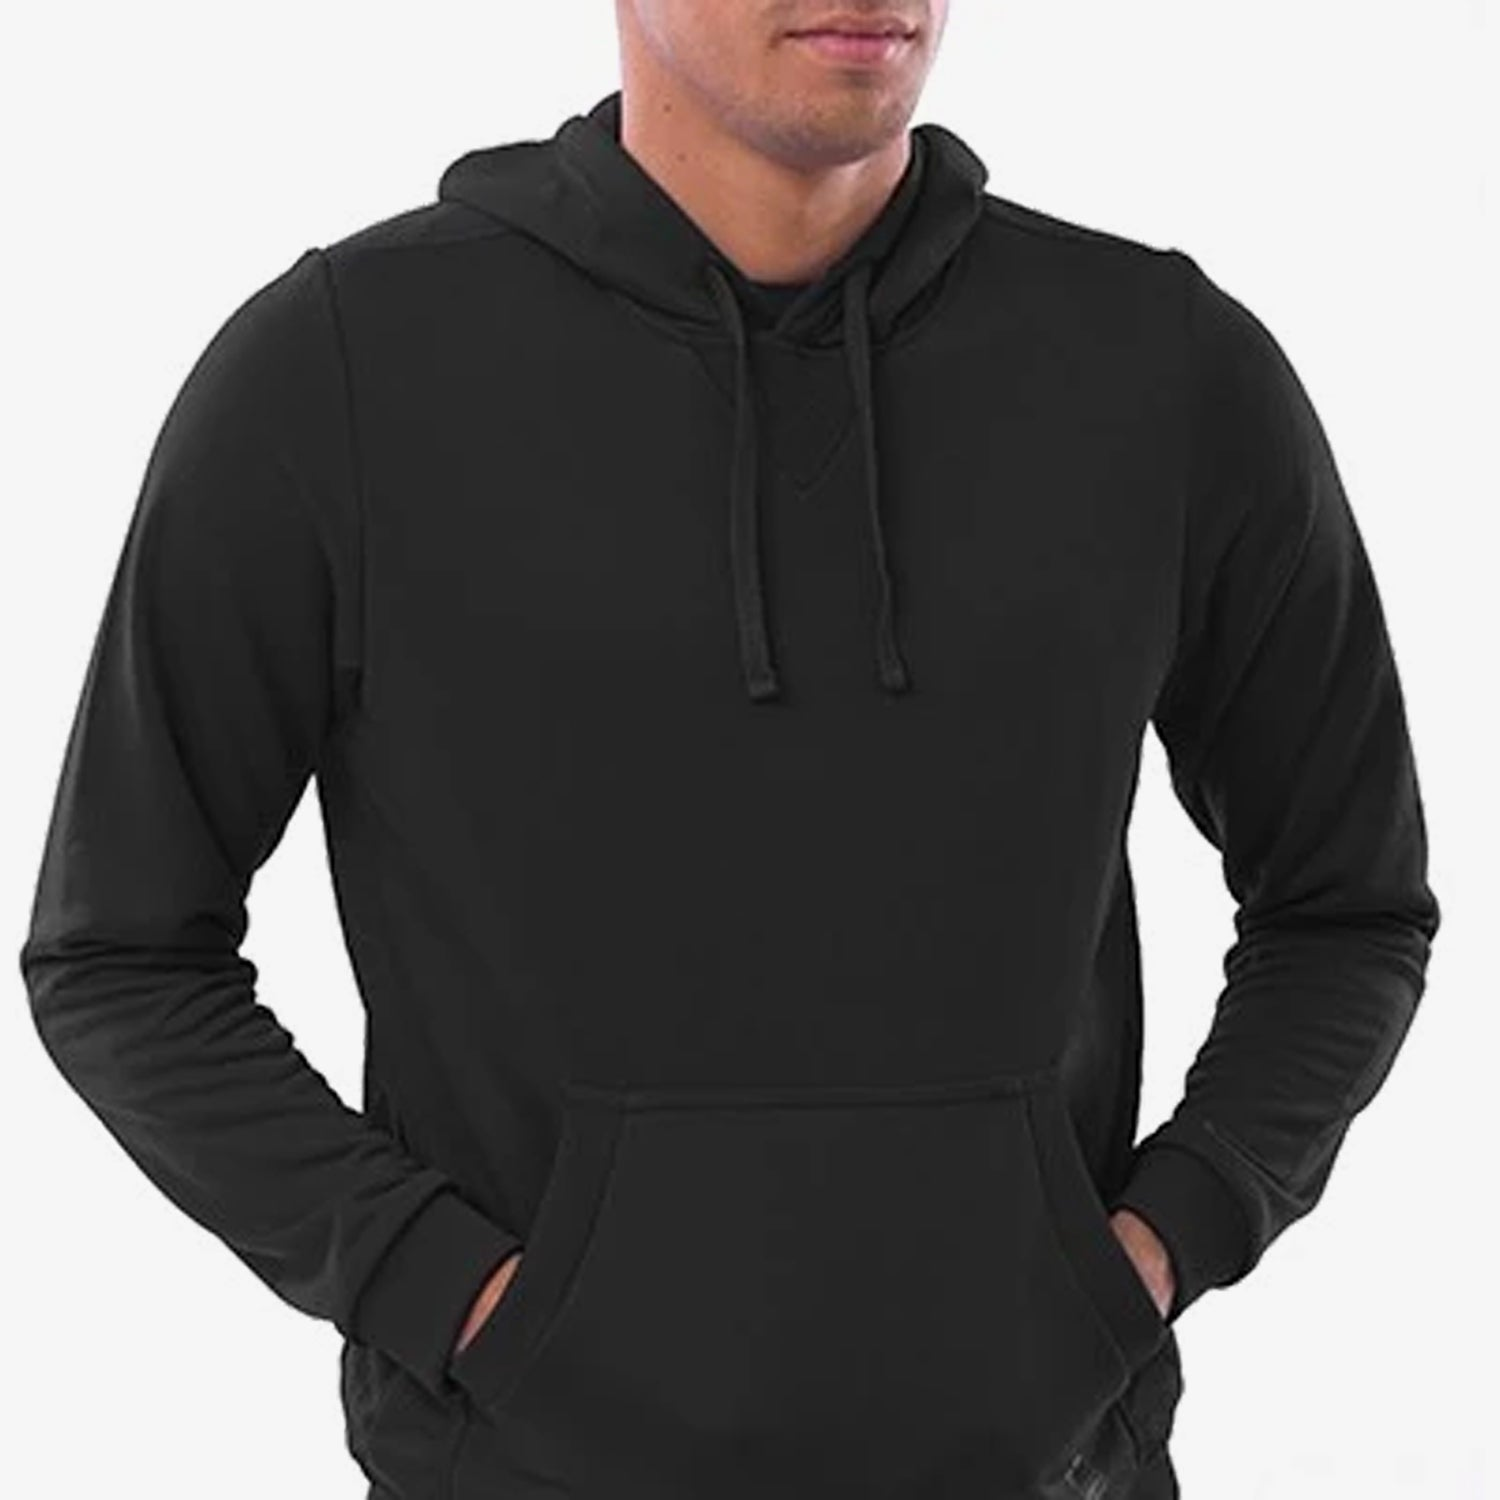 Crew Training Tech Hoodie - Black